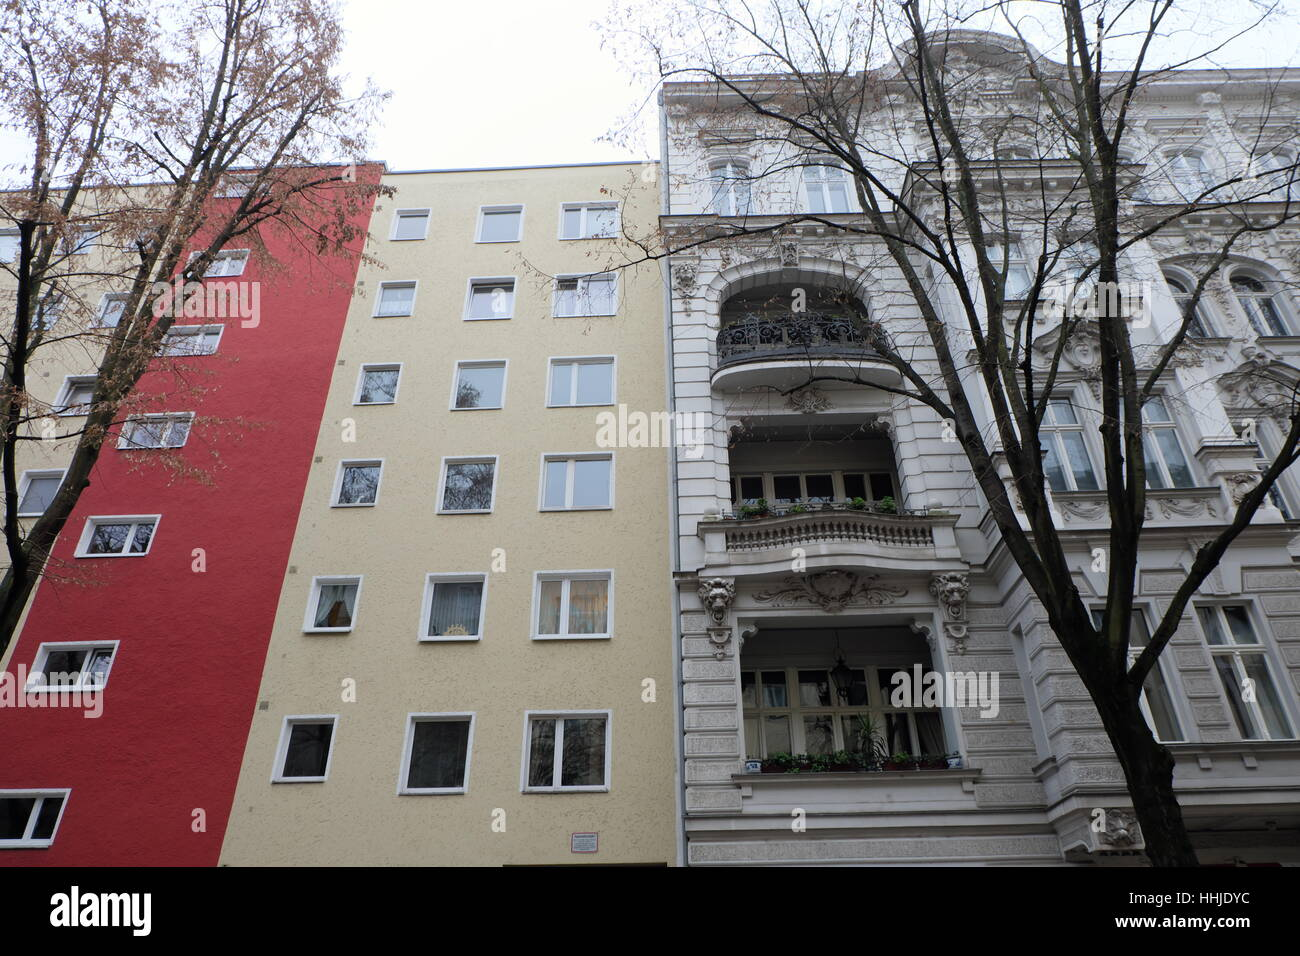 Altbau - Neubau Berlin: New and Old Build as post war reconstruction. Nolendorfstrasse, Schoneburg Stock Photo